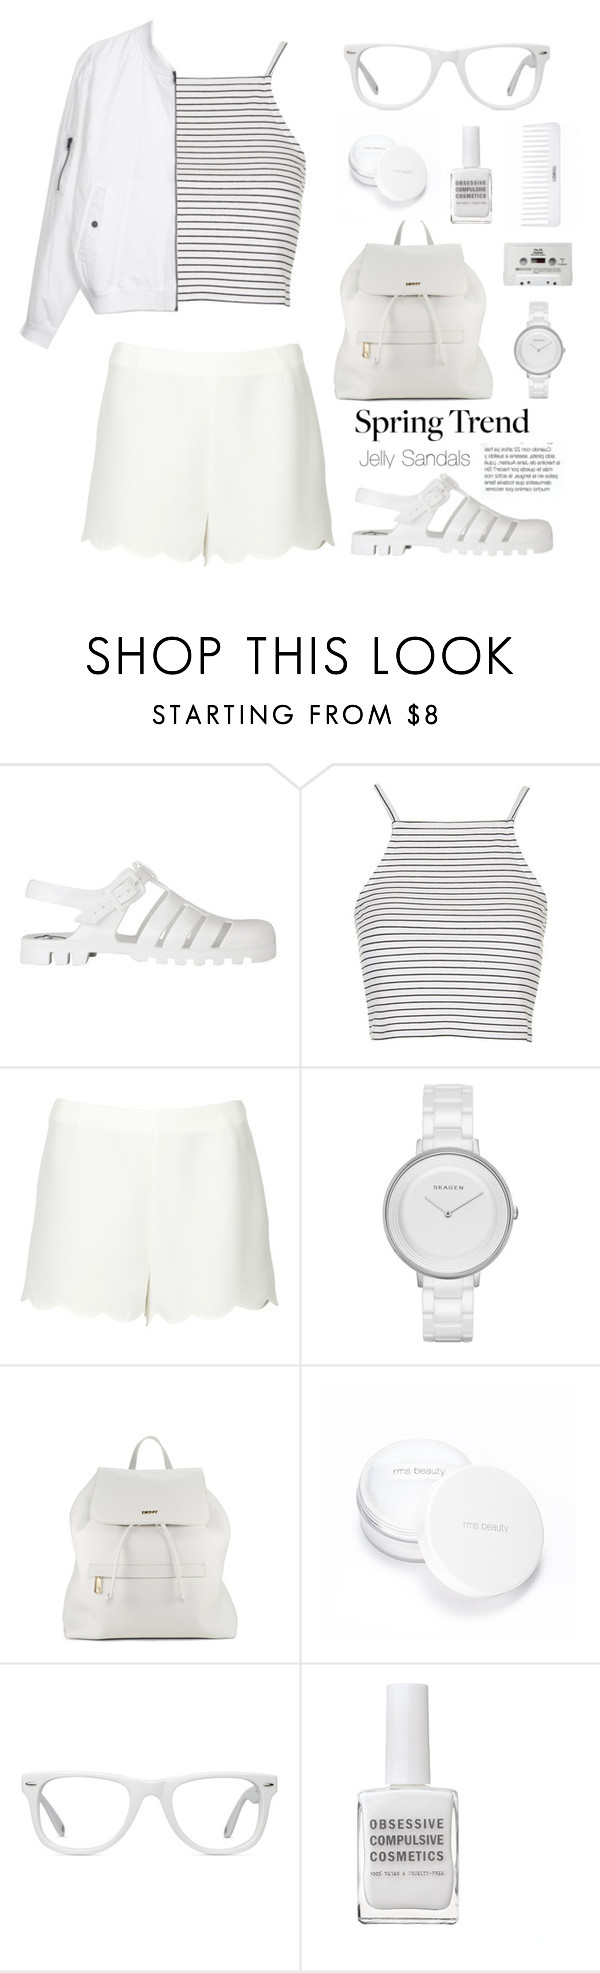 """""""Spring Trend - Jelly Sandals"""" by sofiasolfieri ❤ liked on Polyvore featuring JuJu, Topshop, Valentino, Skagen, DKNY, Conair, rms beauty, Muse, Obsessive Compulsive Cosmetics and CASSETTE"""